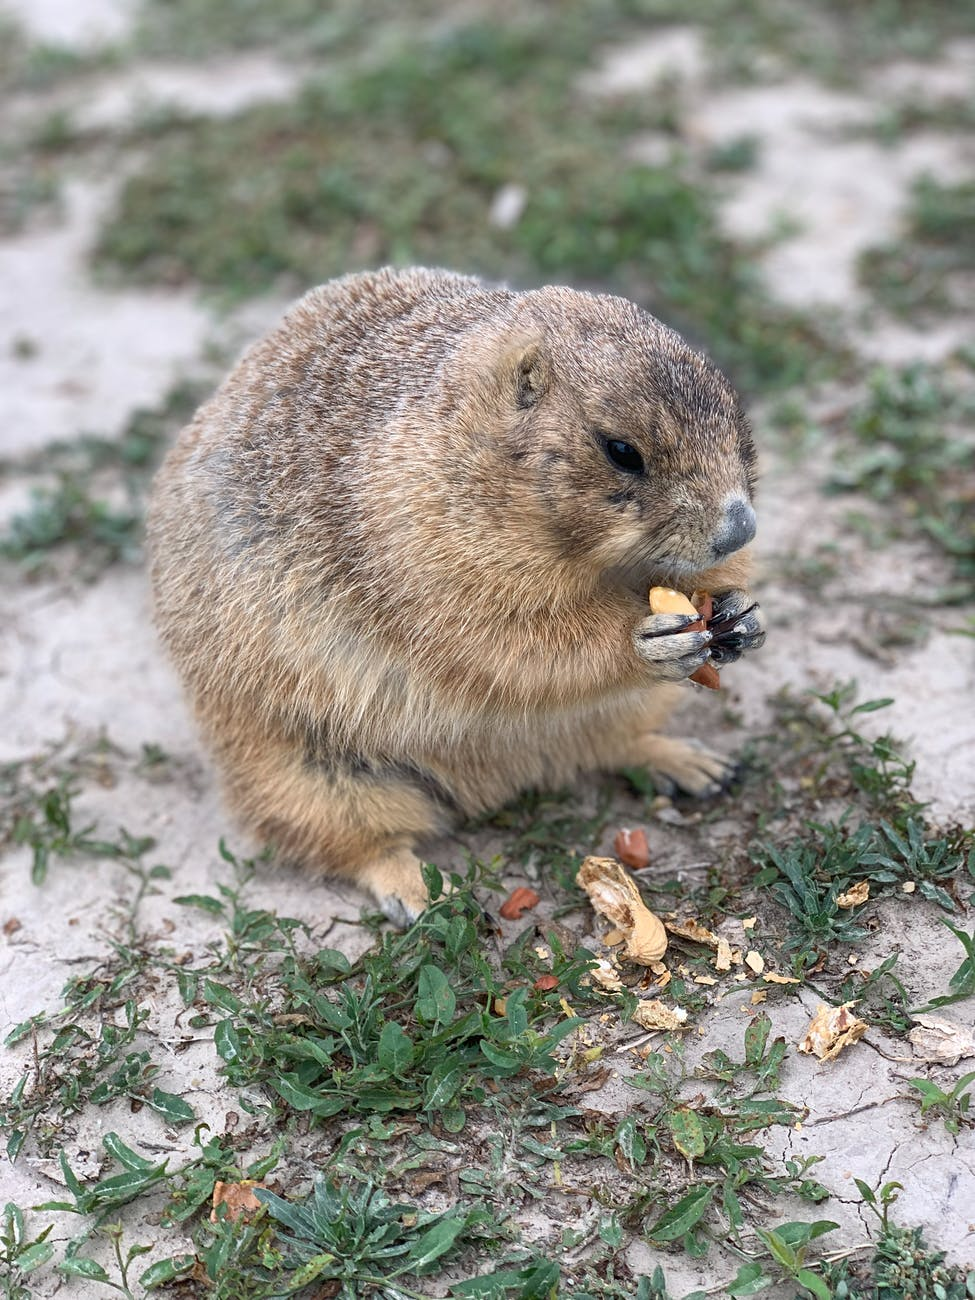 fluffy wild woodchuck gnawing nuts sitting on grass